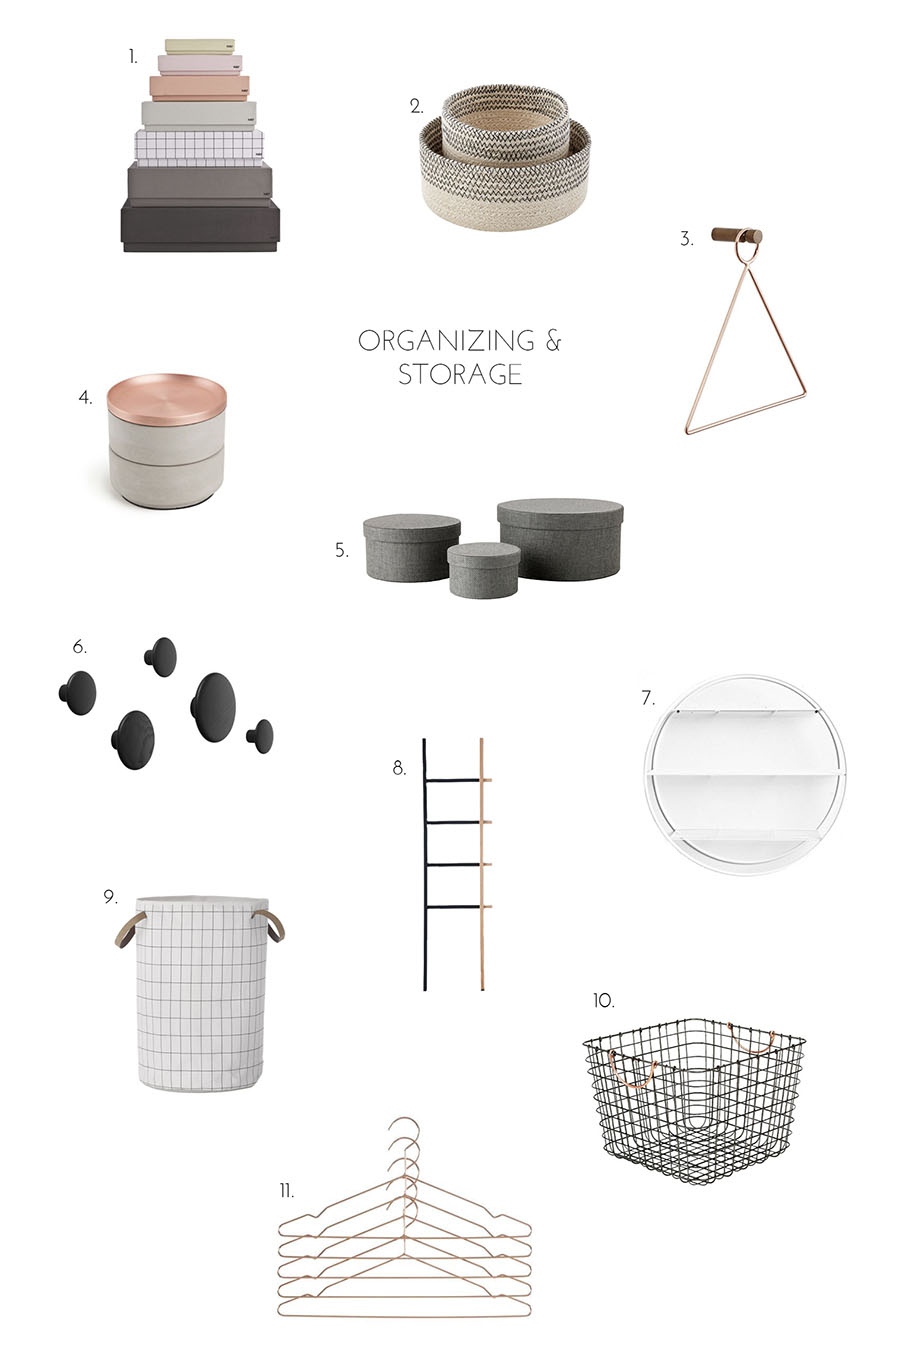 Organizing and storage accessories